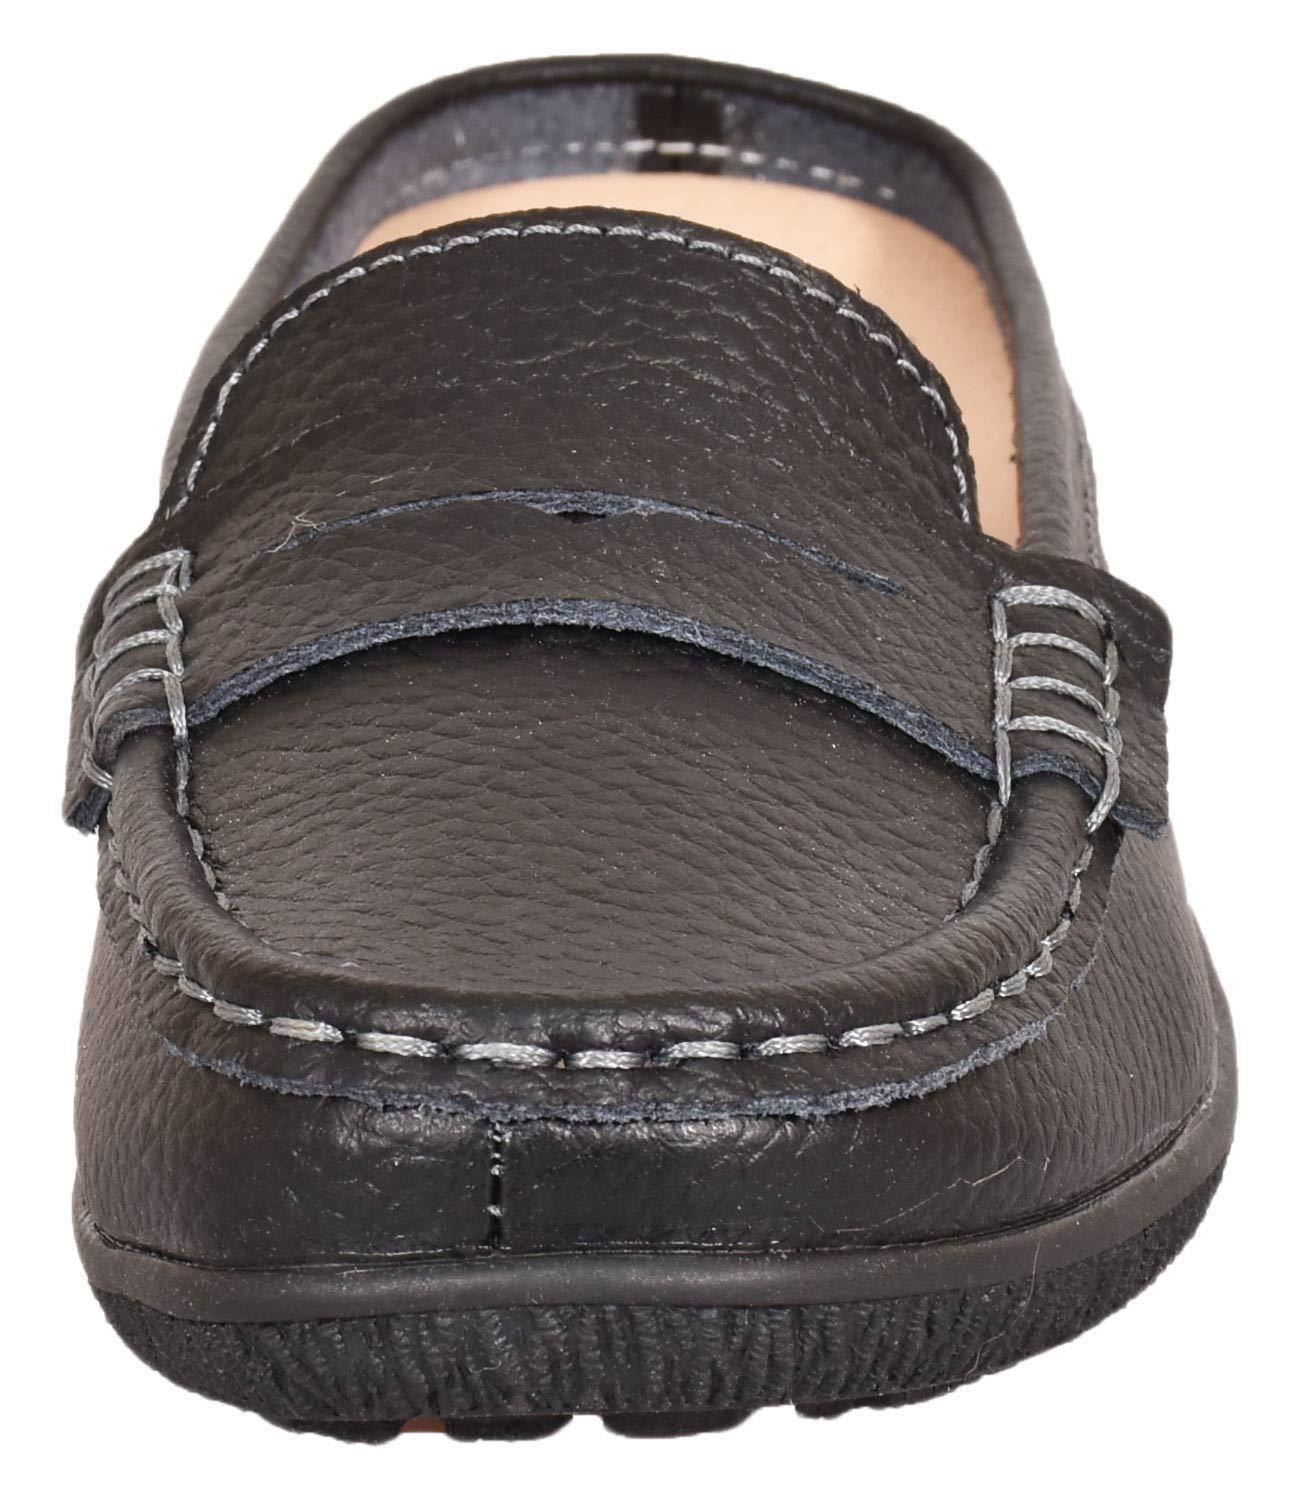 Ladies-Leather-Loafer-Mules-Comfort-Shoes-Womens-Slider-Moccasins-Shoes thumbnail 6